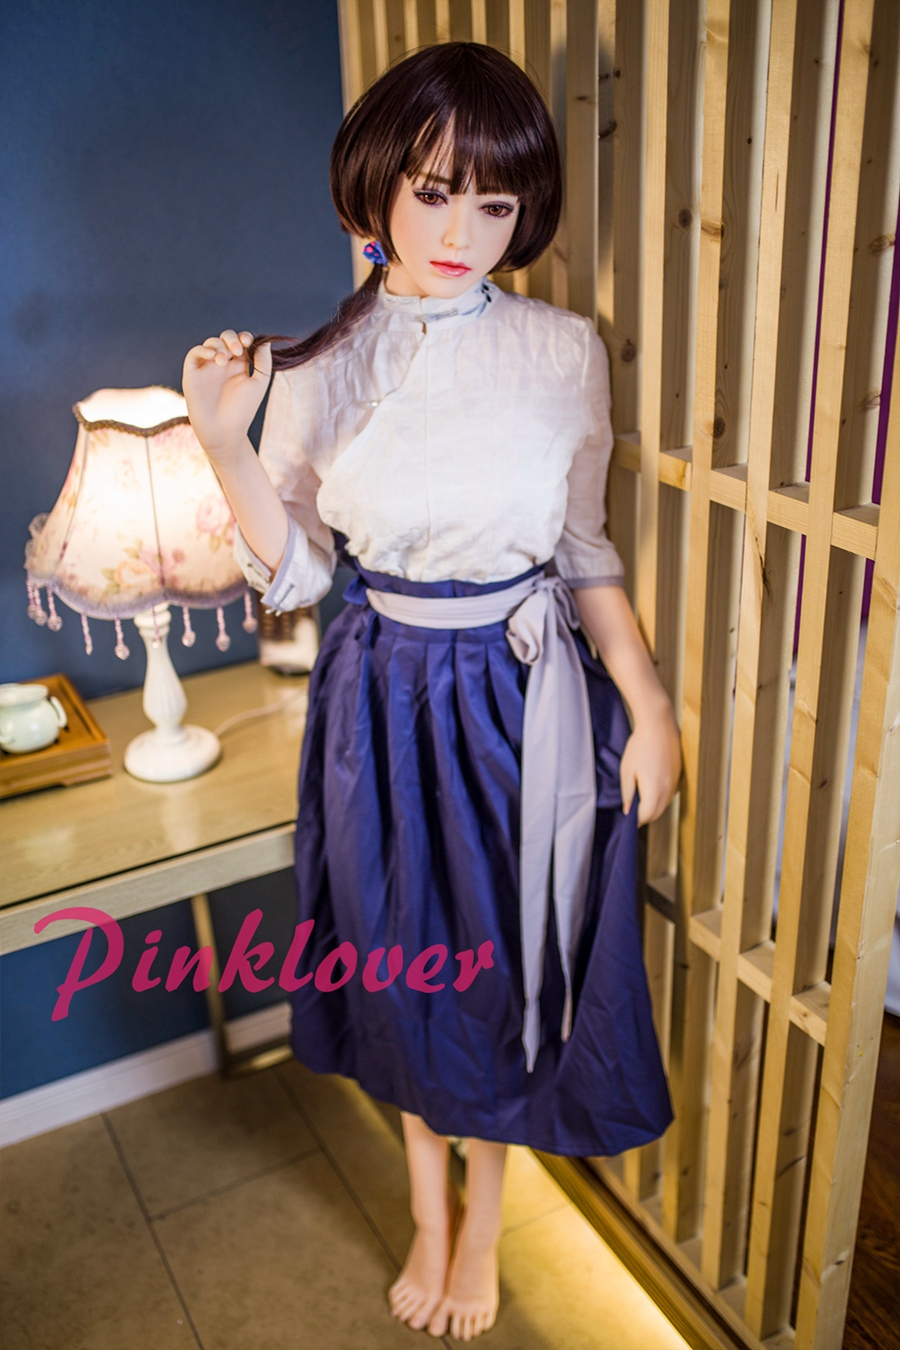 Pinklover <font><b>boy</b></font> and girl Lifelike Cute Real Height 158cm <font><b>Sex</b></font> <font><b>Doll</b></font> Realistic TPE image